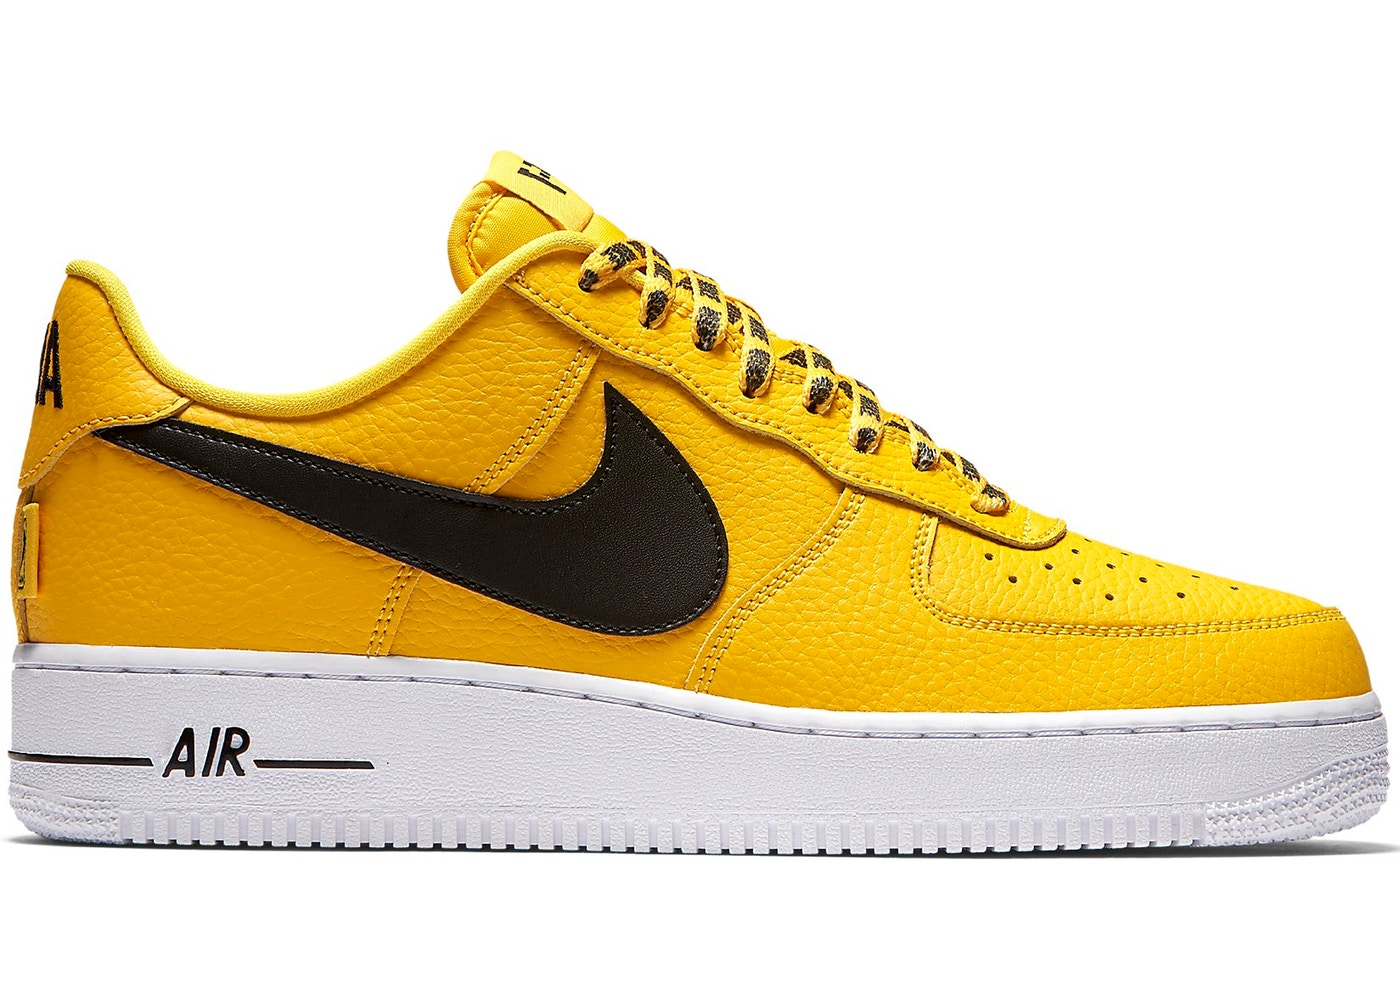 Nike Air Force 1 Low Nba Amarillo 823511 701